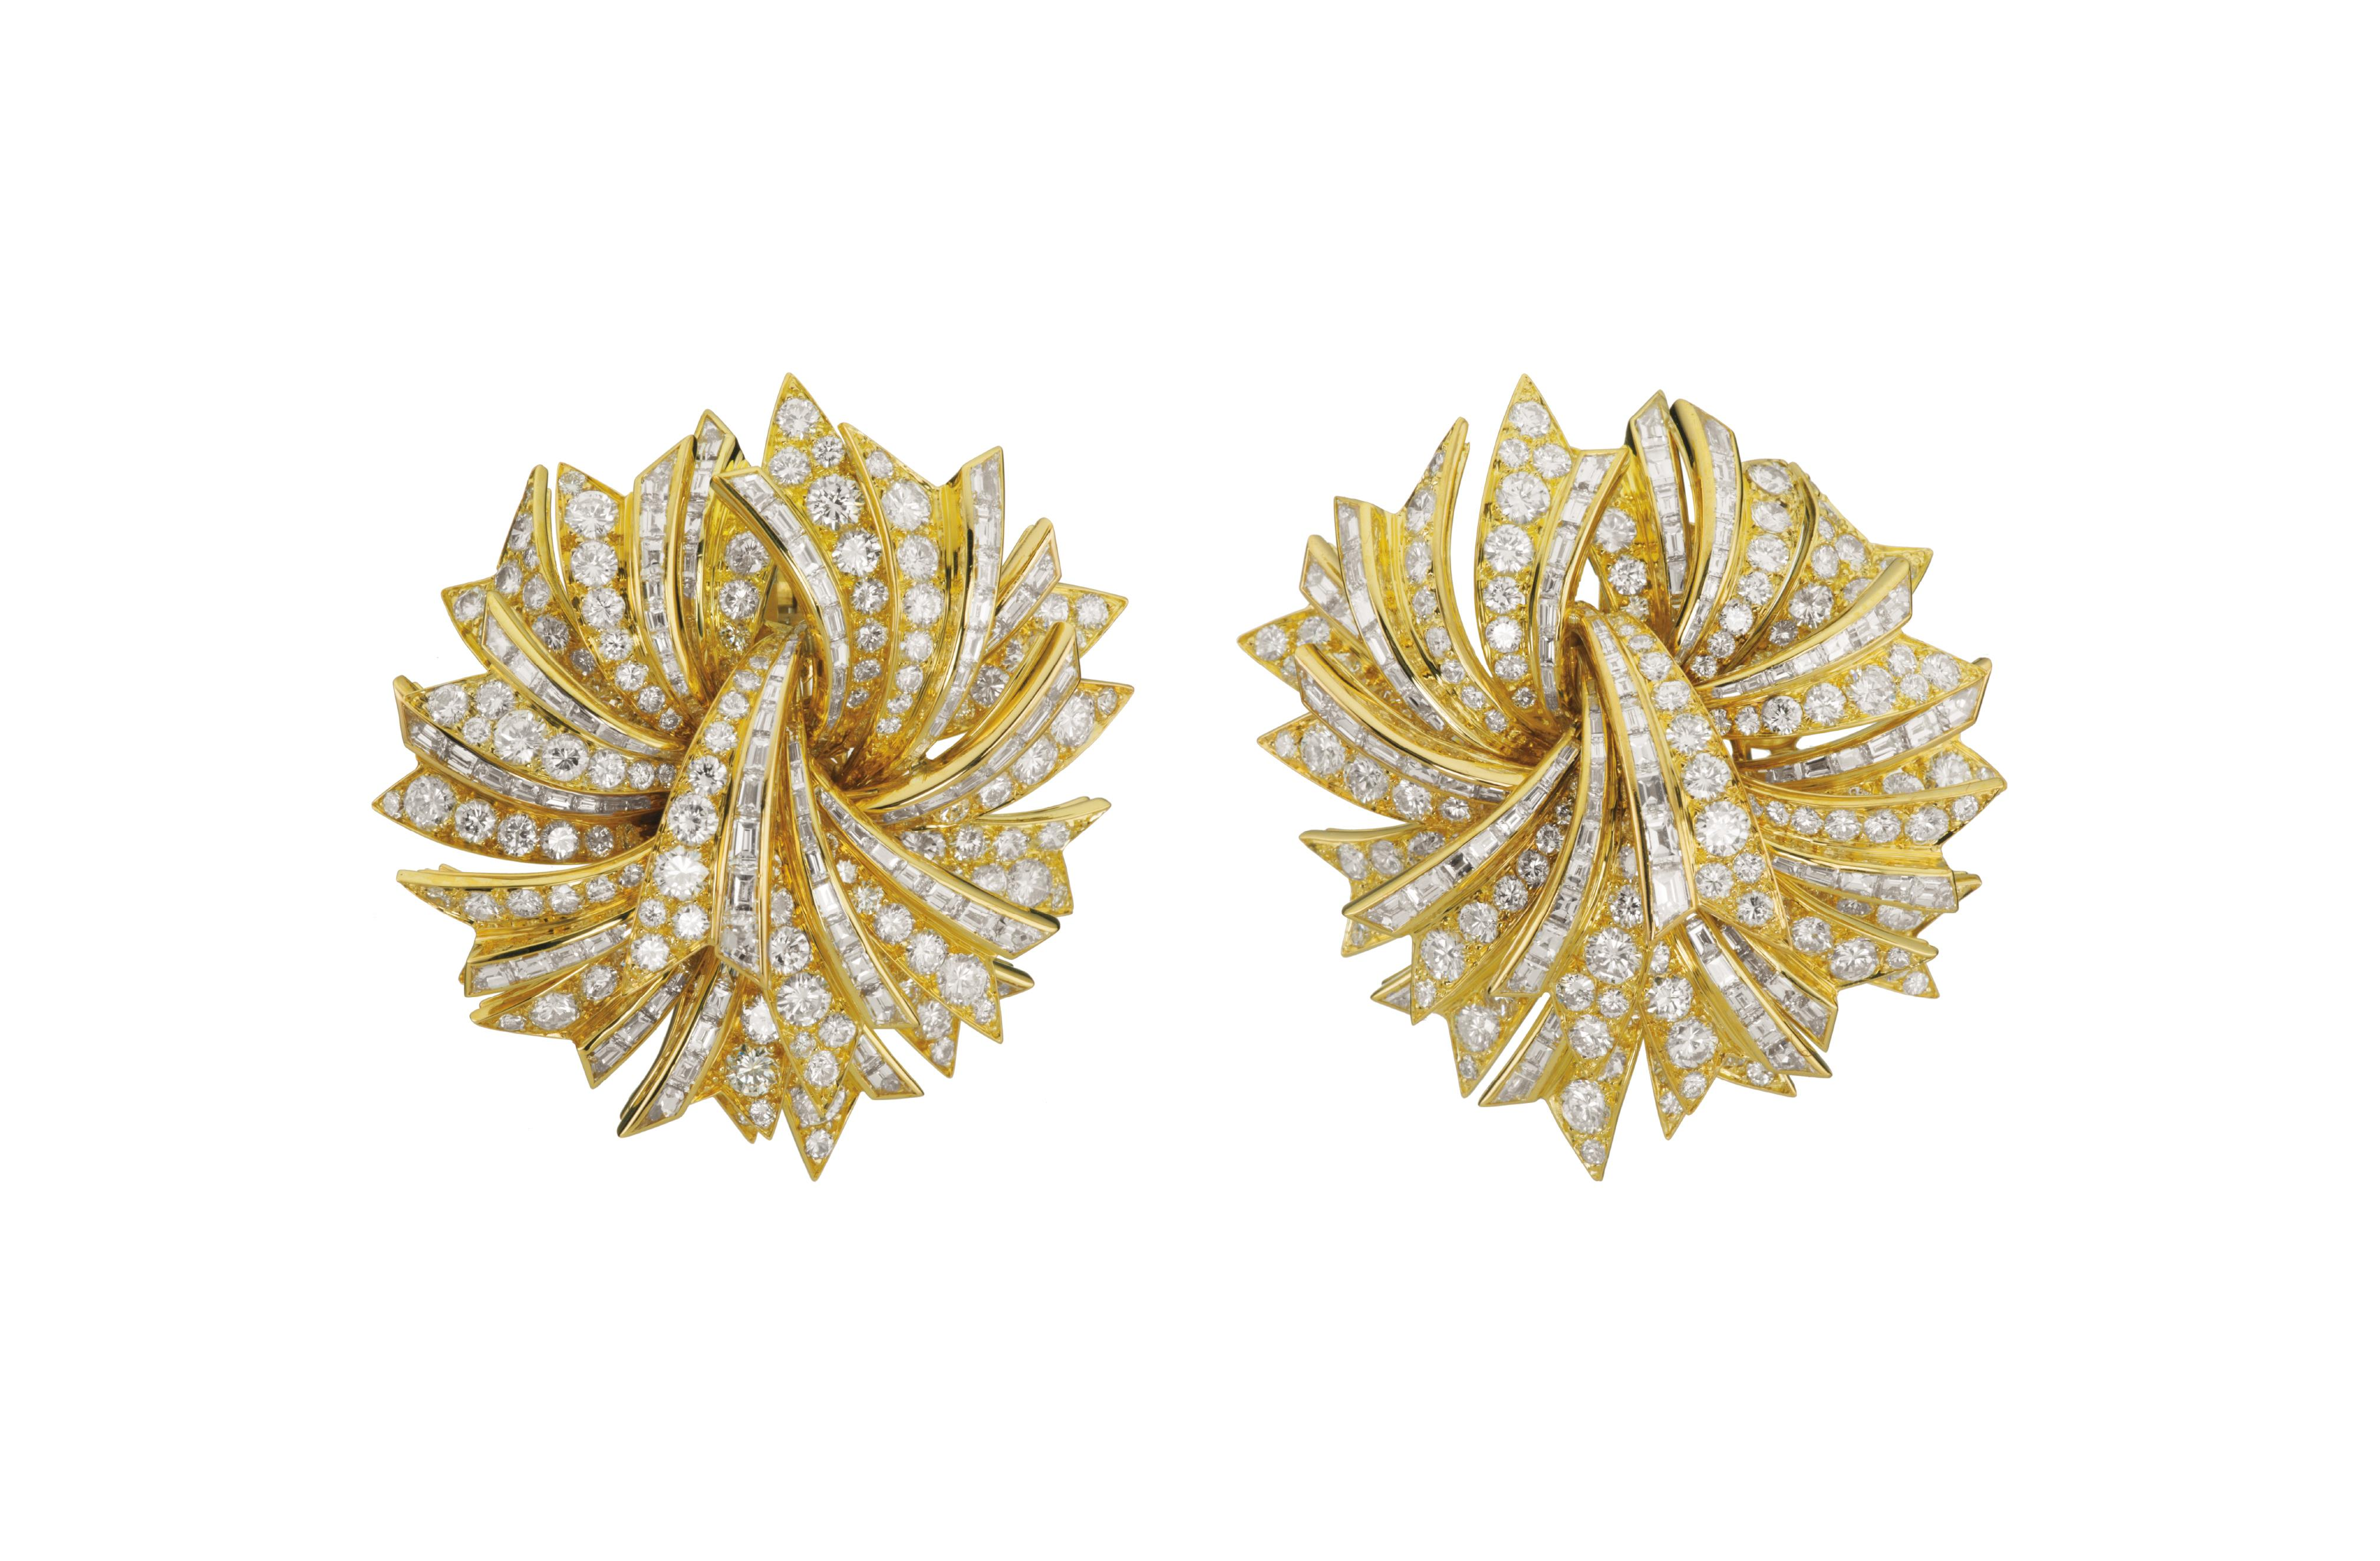 A Pair of Gold and Diamond Earclips